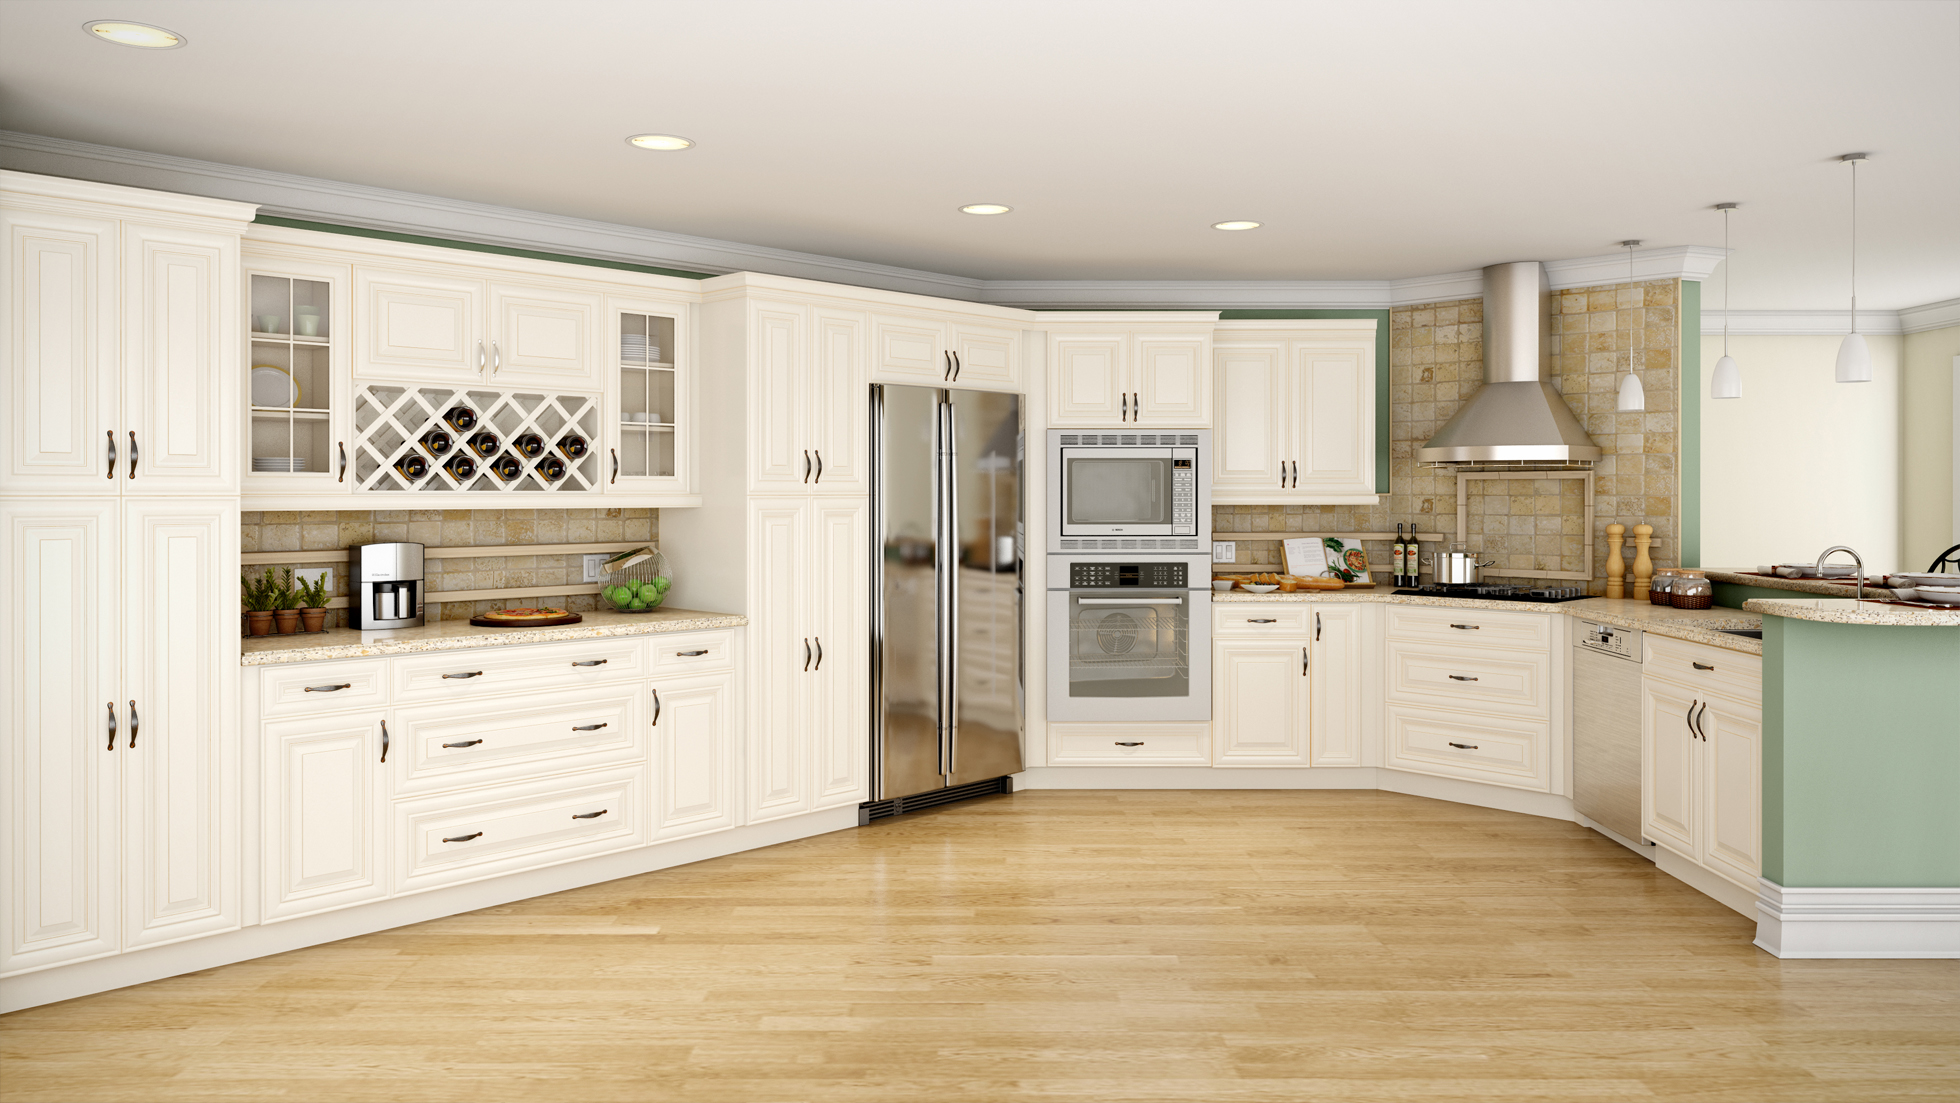 The Rockport Cabinetry Line by Adornus - RTA Kitchen Cabinets